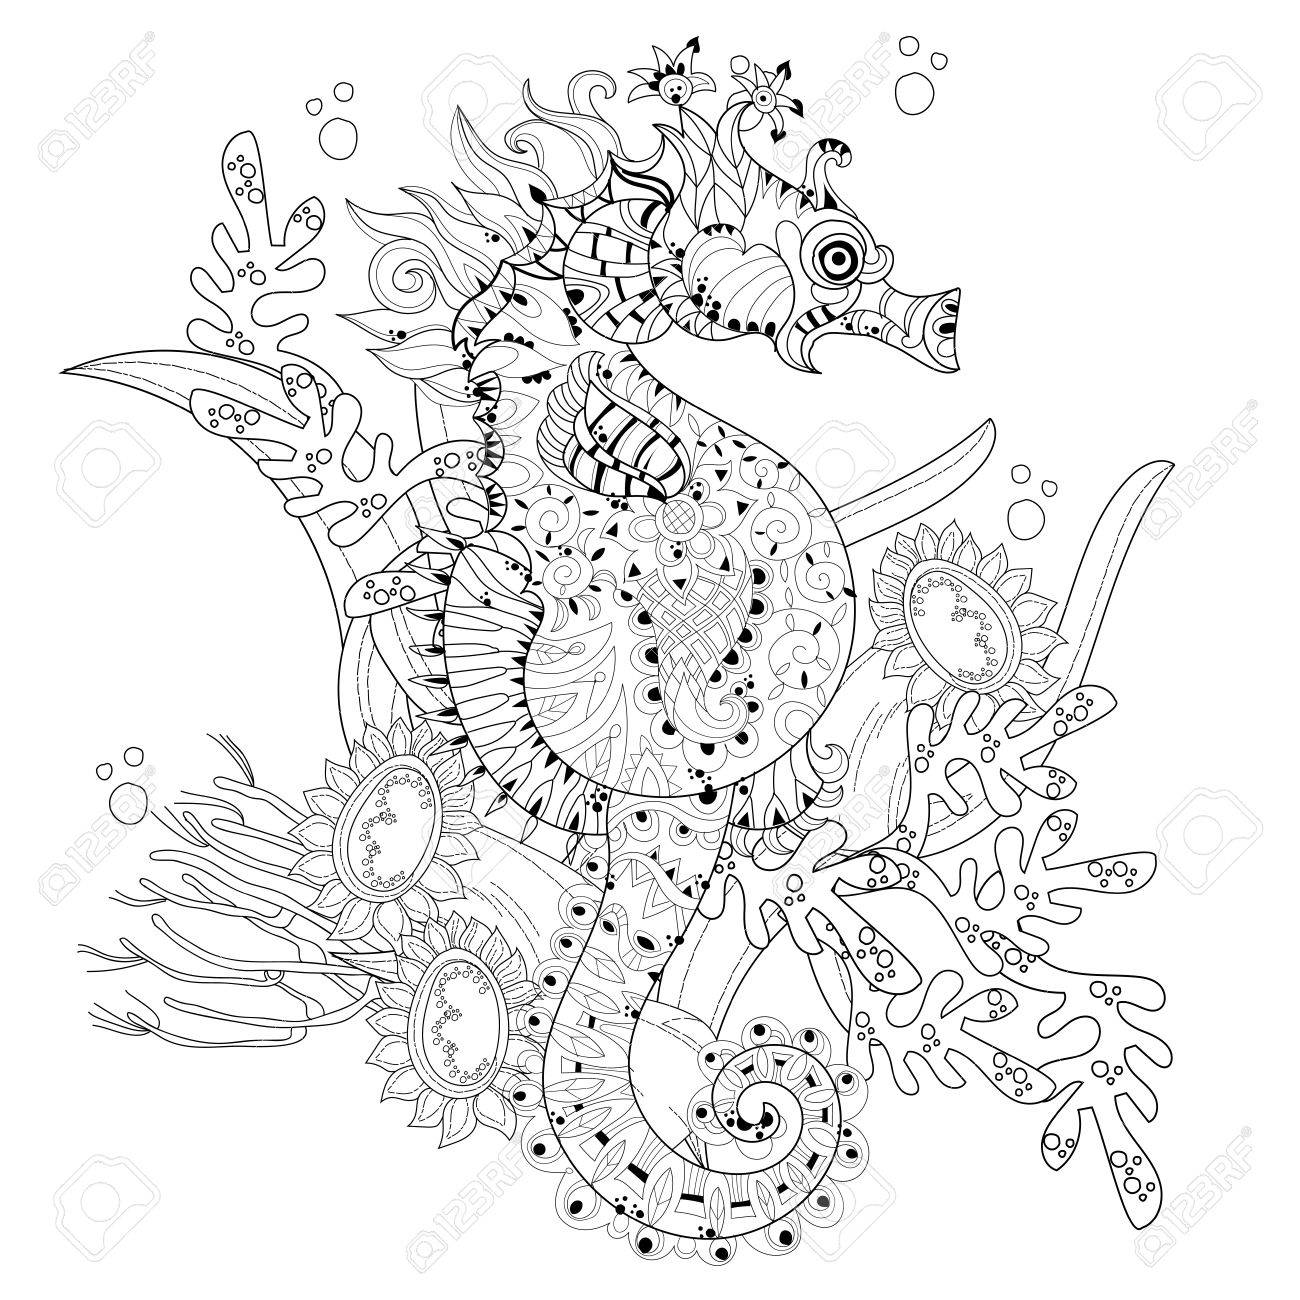 Seahorse Outline Drawing Tattoos Wiring Diagrams Signal Distribution Amplifier Circuit Diagram Tradeoficcom Hand Drawn Doodle Decorated With Ornaments Floral Rh 123rf Com Beautiful Silhouette